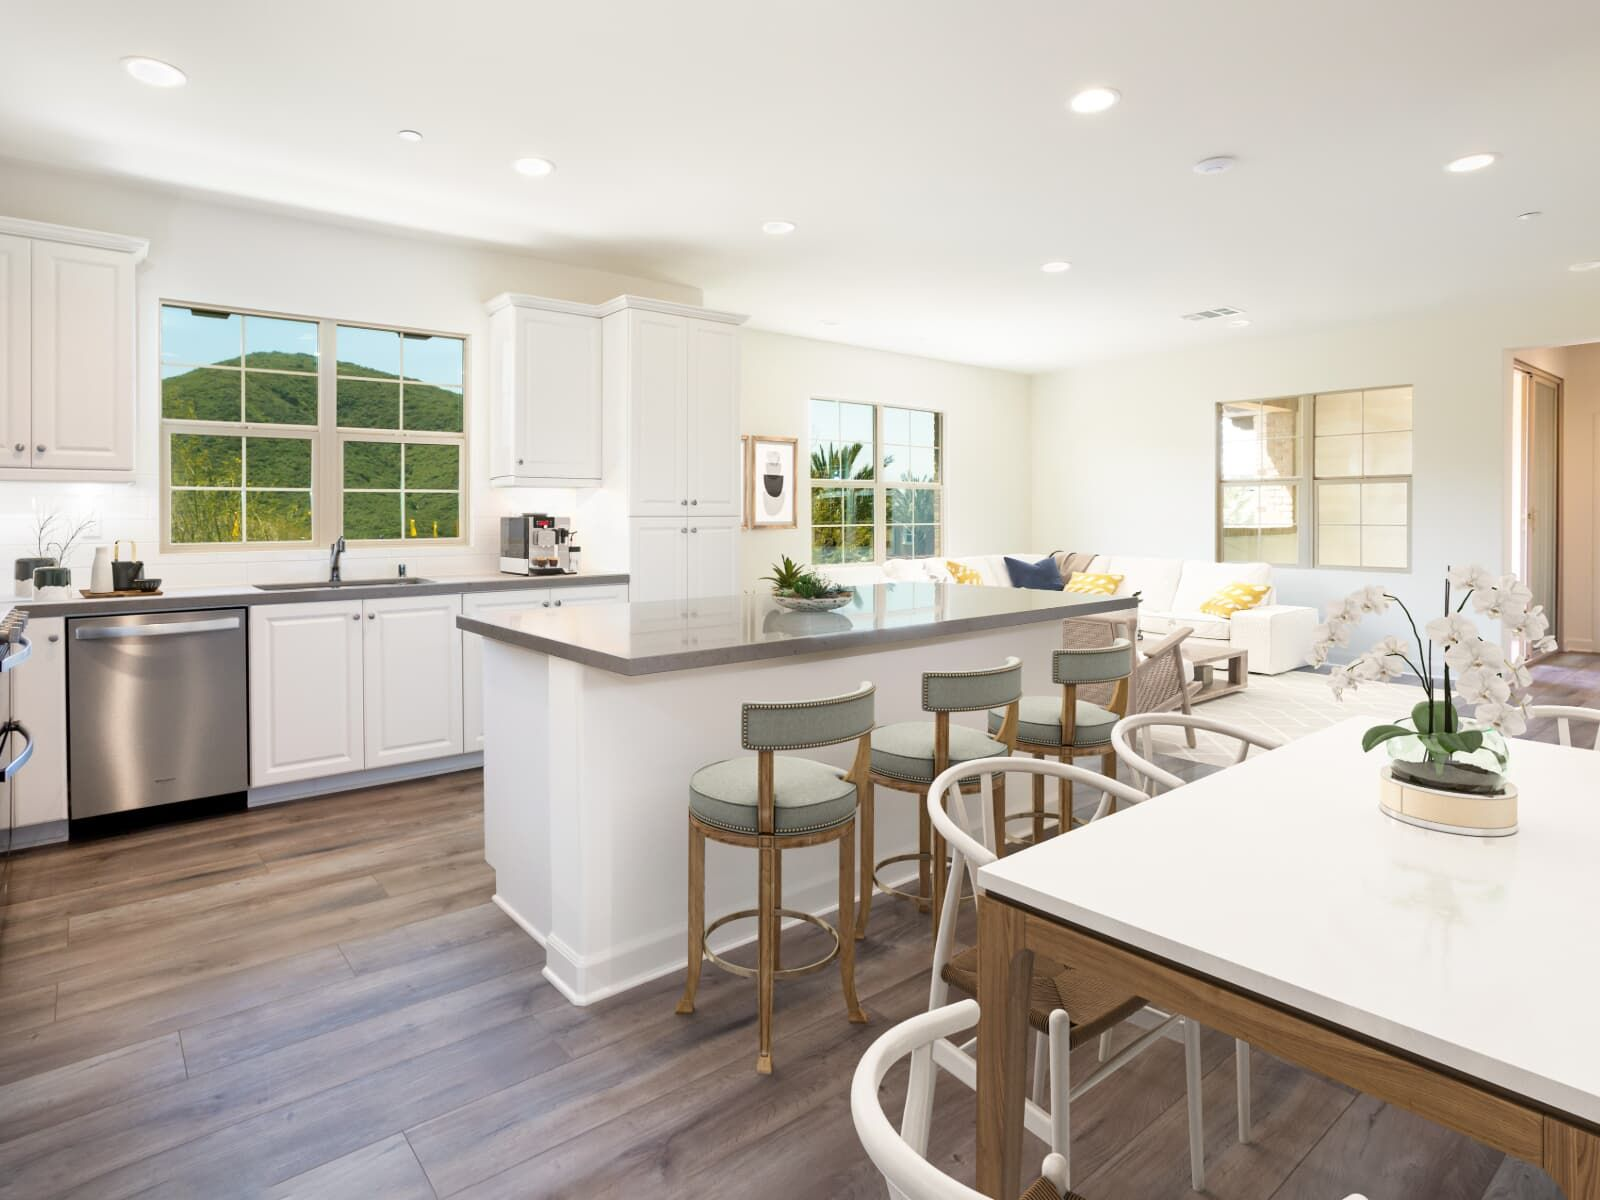 Kitchen featured in the Residence 3 By Brookfield Residential in San Diego, CA